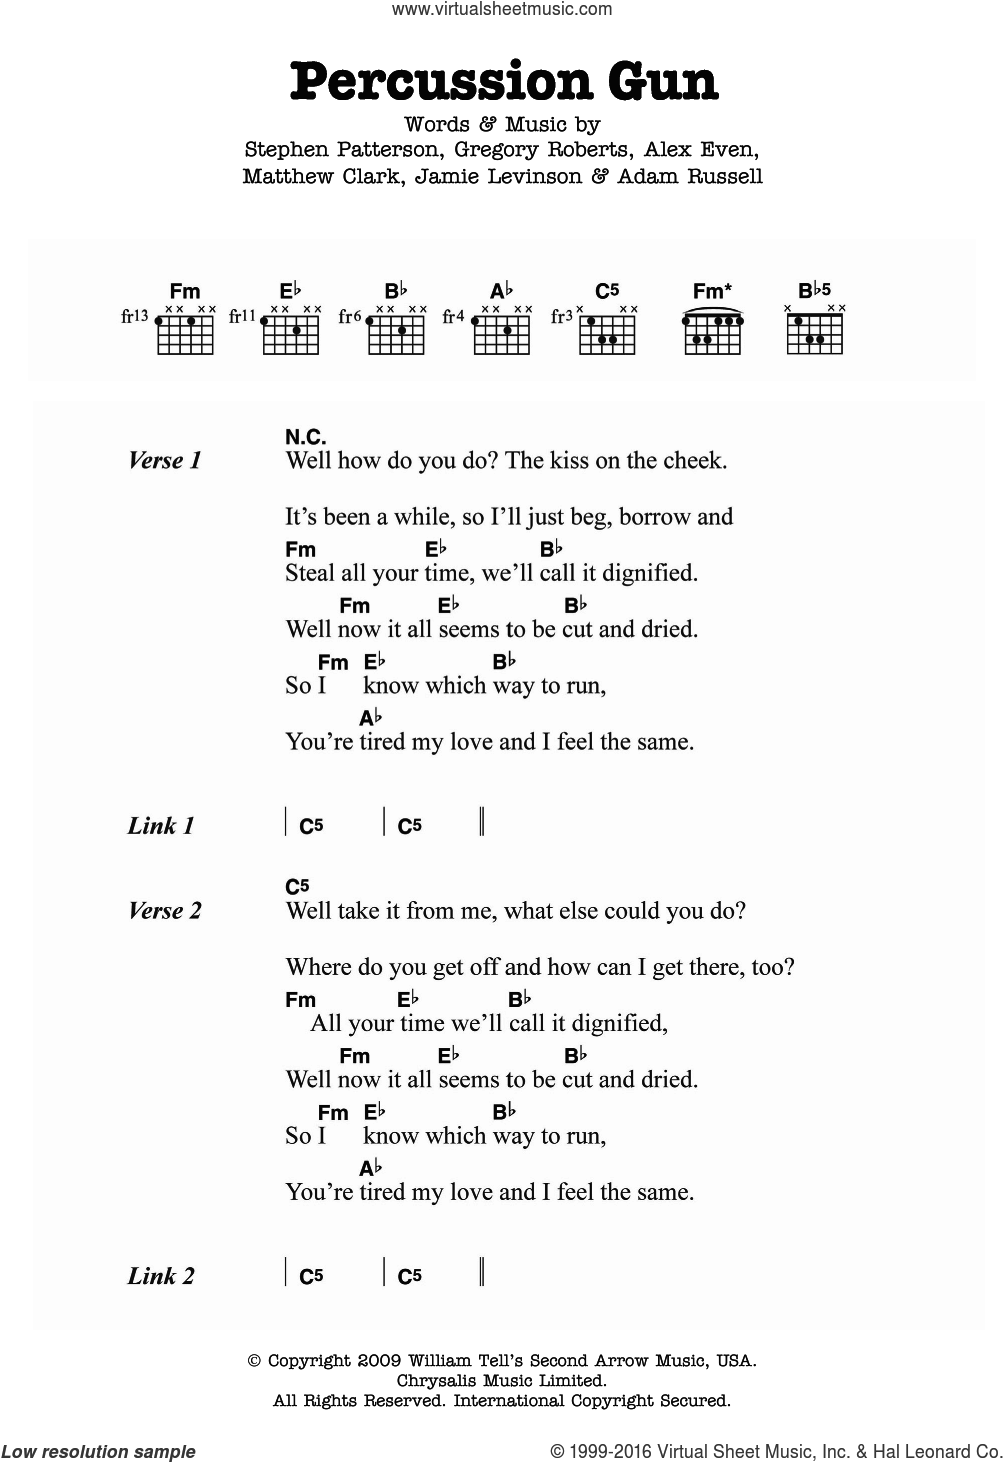 Percussion Gun sheet music for guitar (chords) by White Rabbits, Adam Russell, Alex Even, Gregory Roberts, Jamie Levinson, Matthew Clark and Stephen Patterson, intermediate